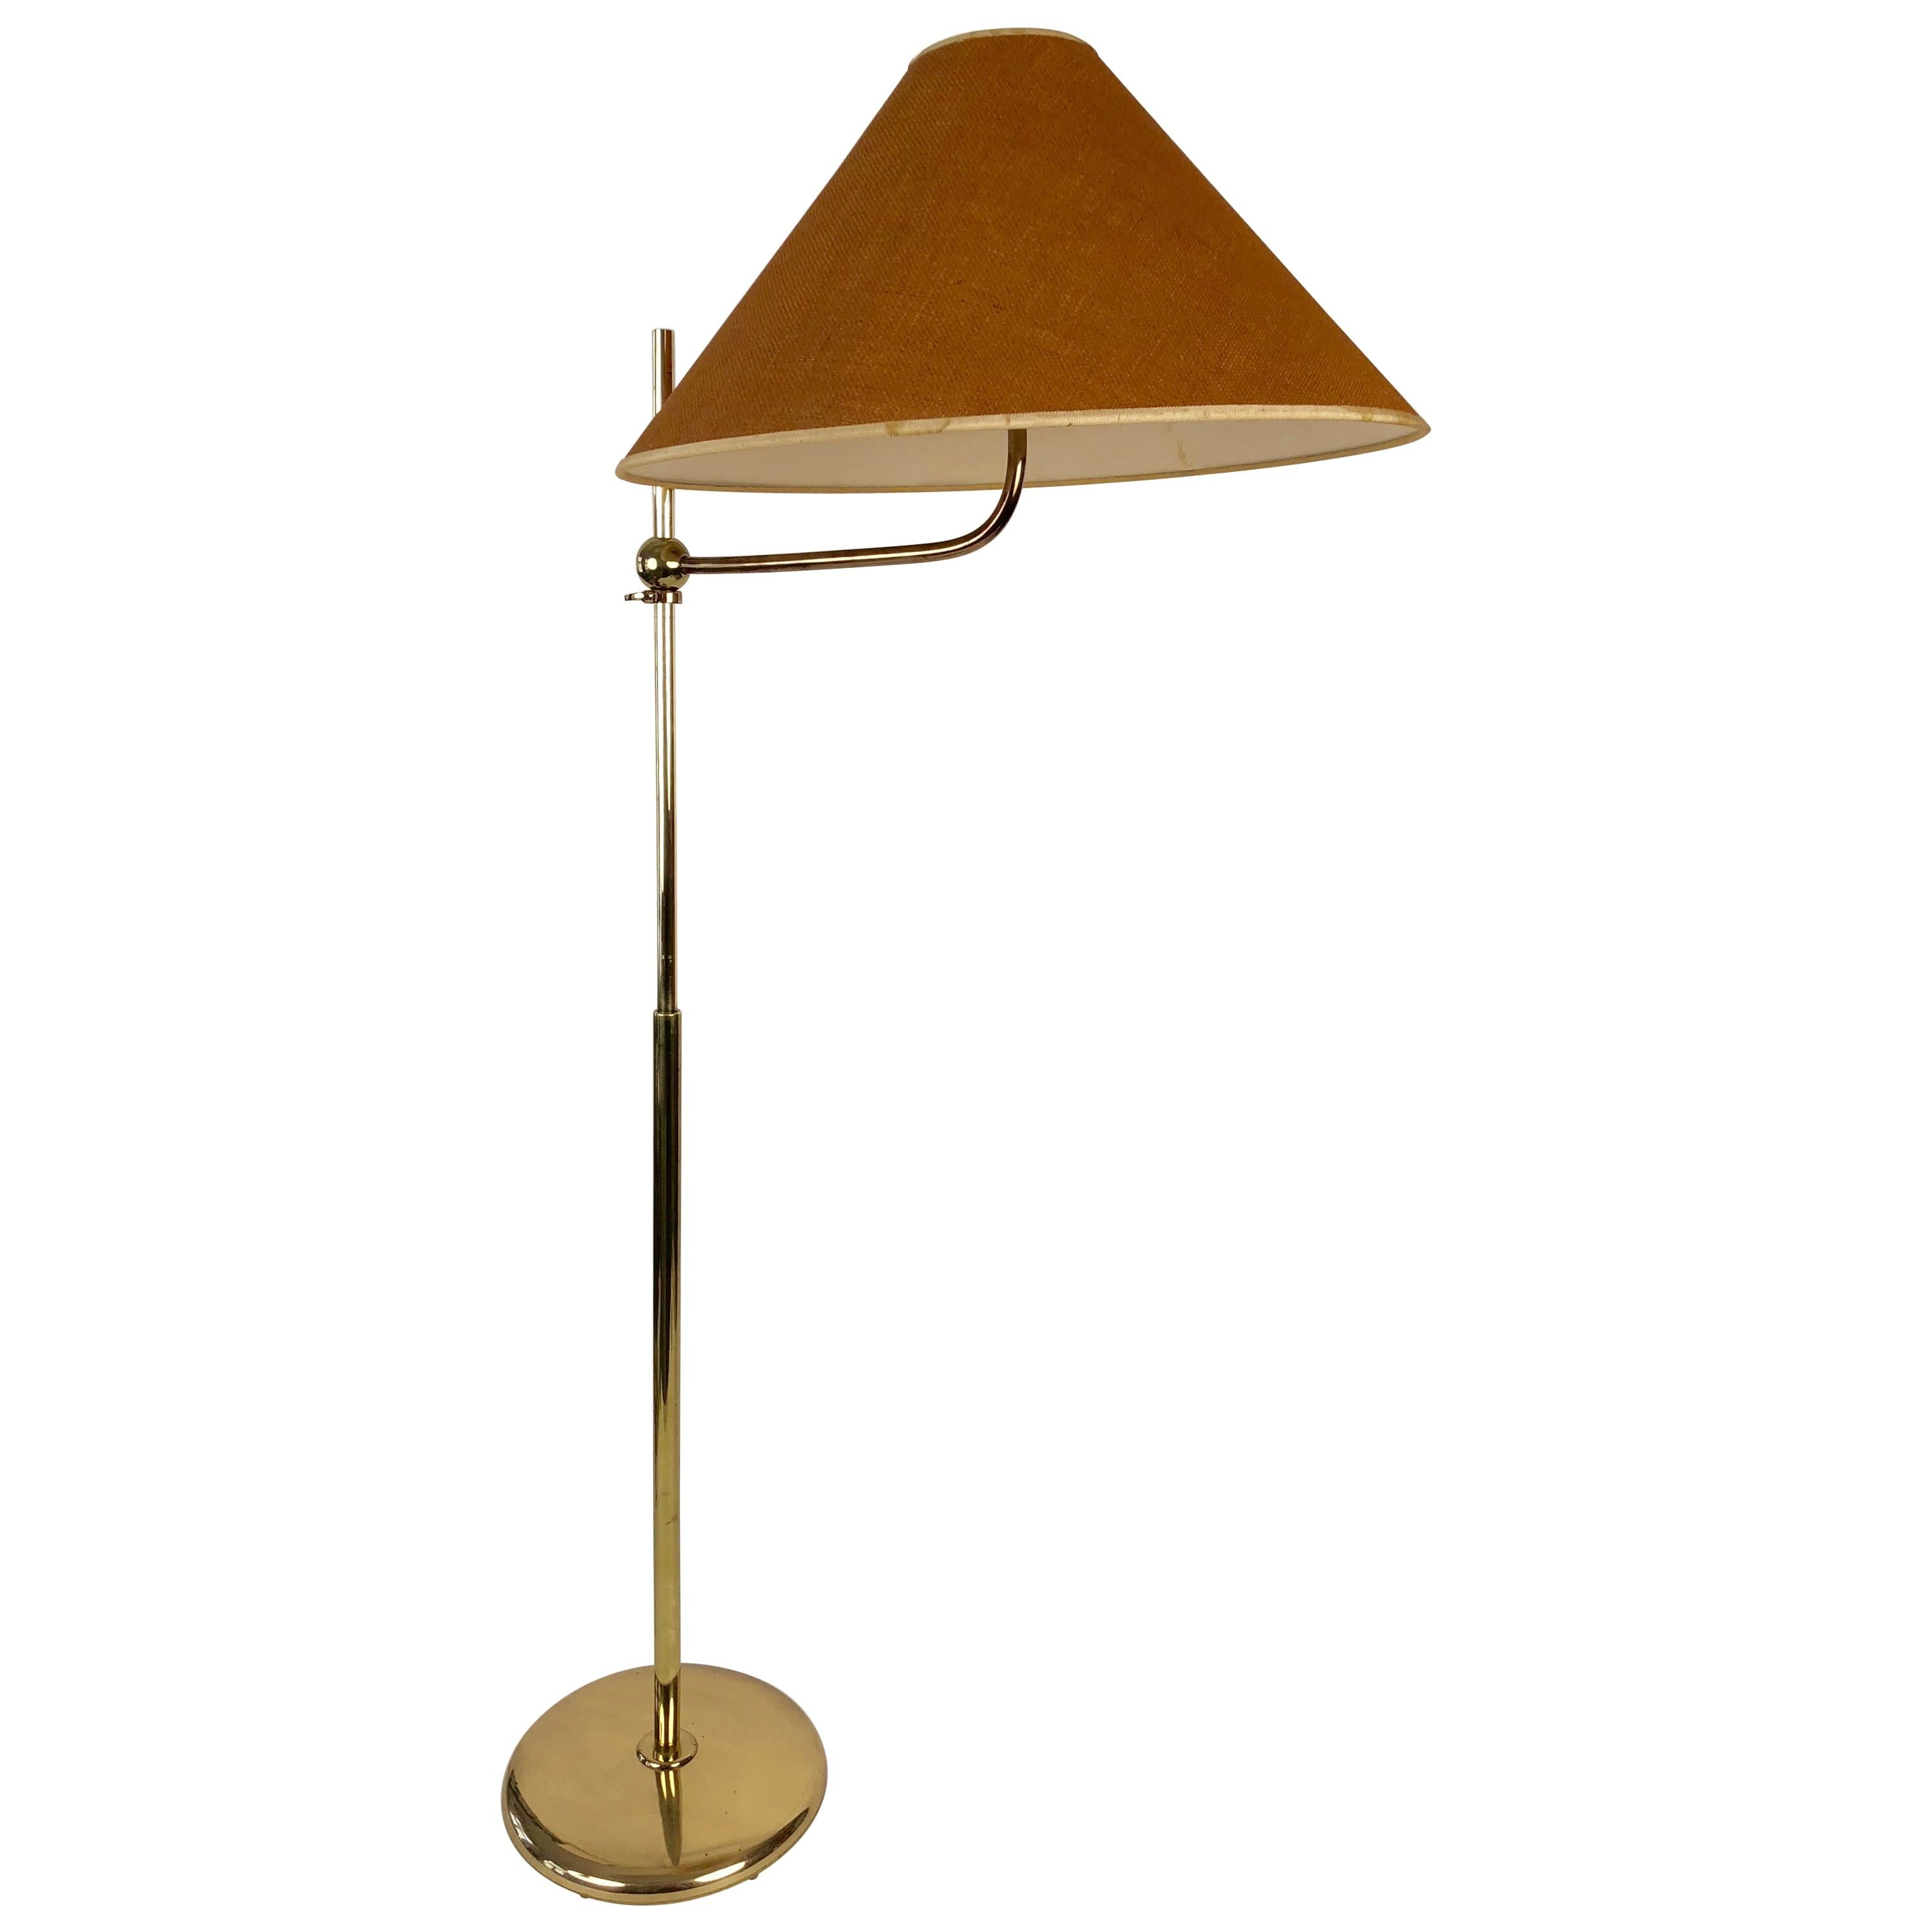 Adjustable Brass Floor Lamp from J. T. Kalmar, Made in the 1960s